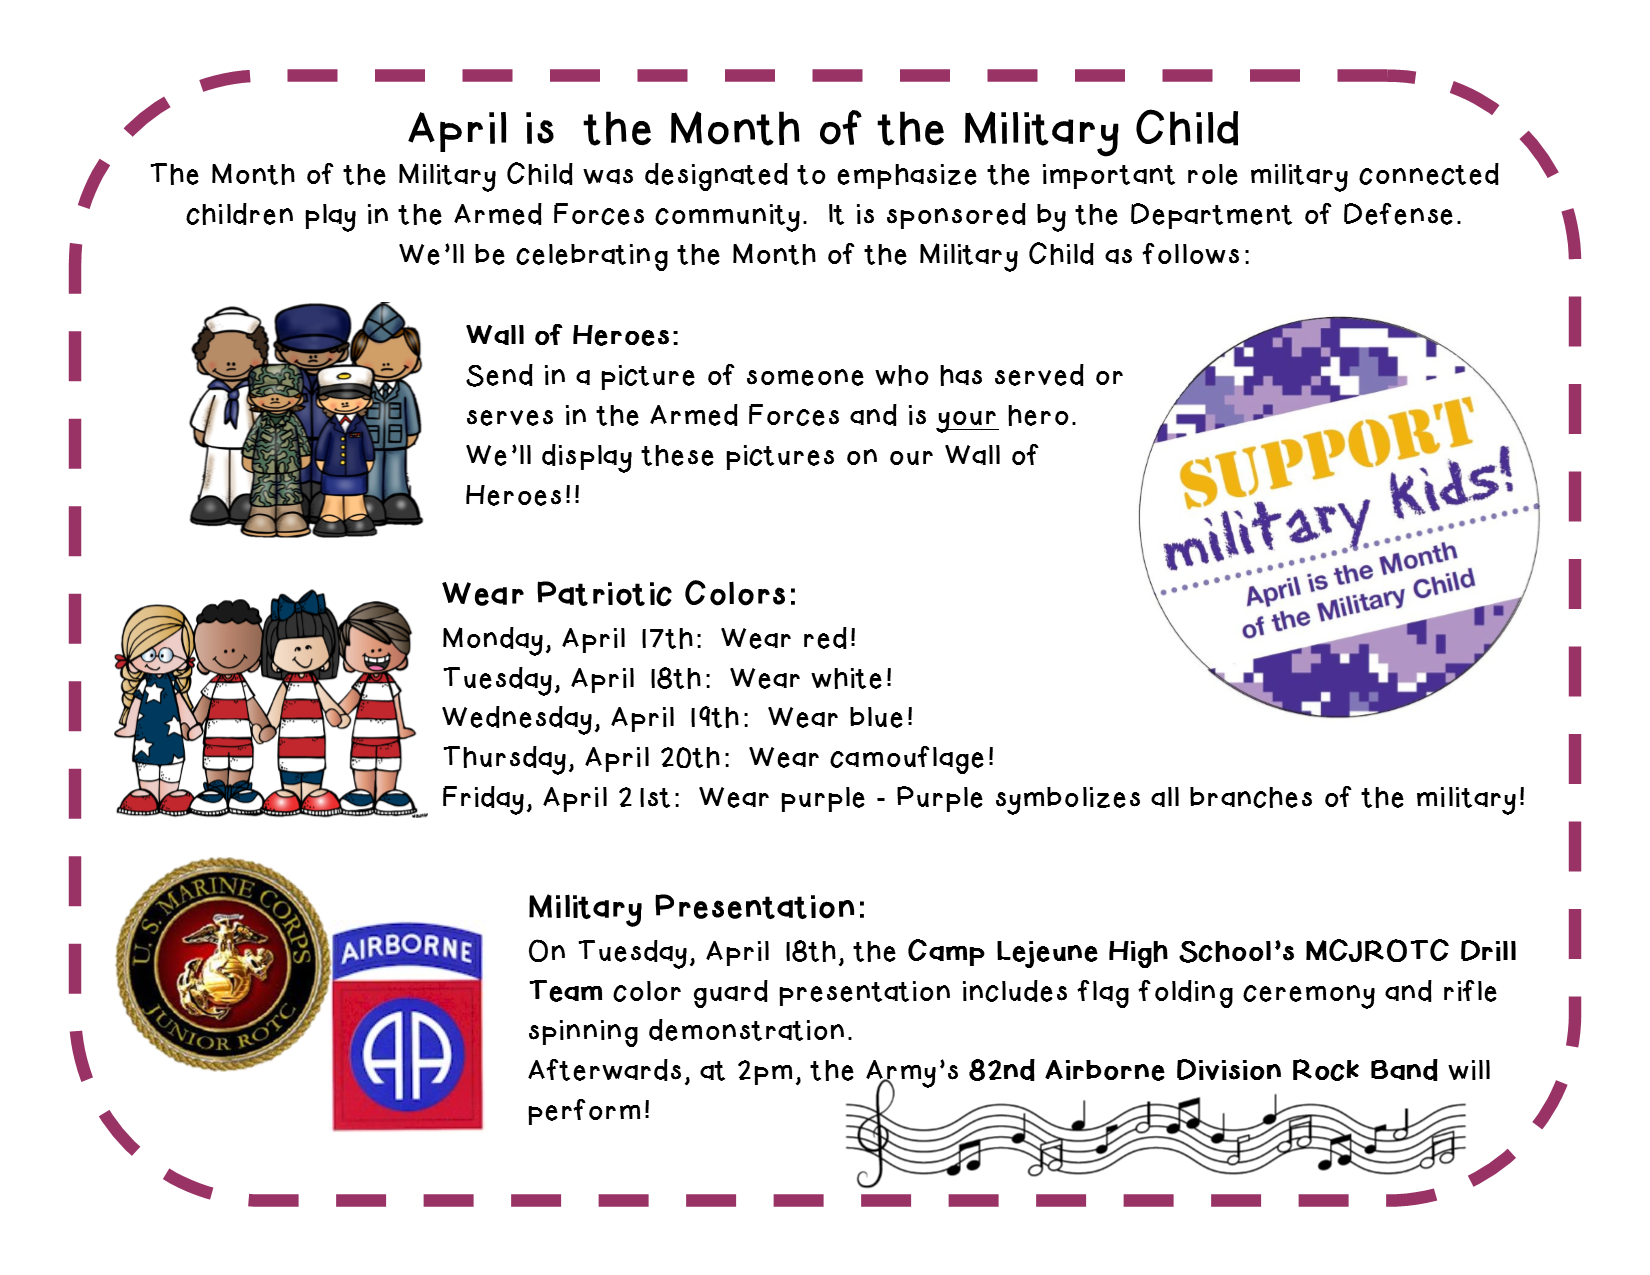 April is the Month of the Military Child events